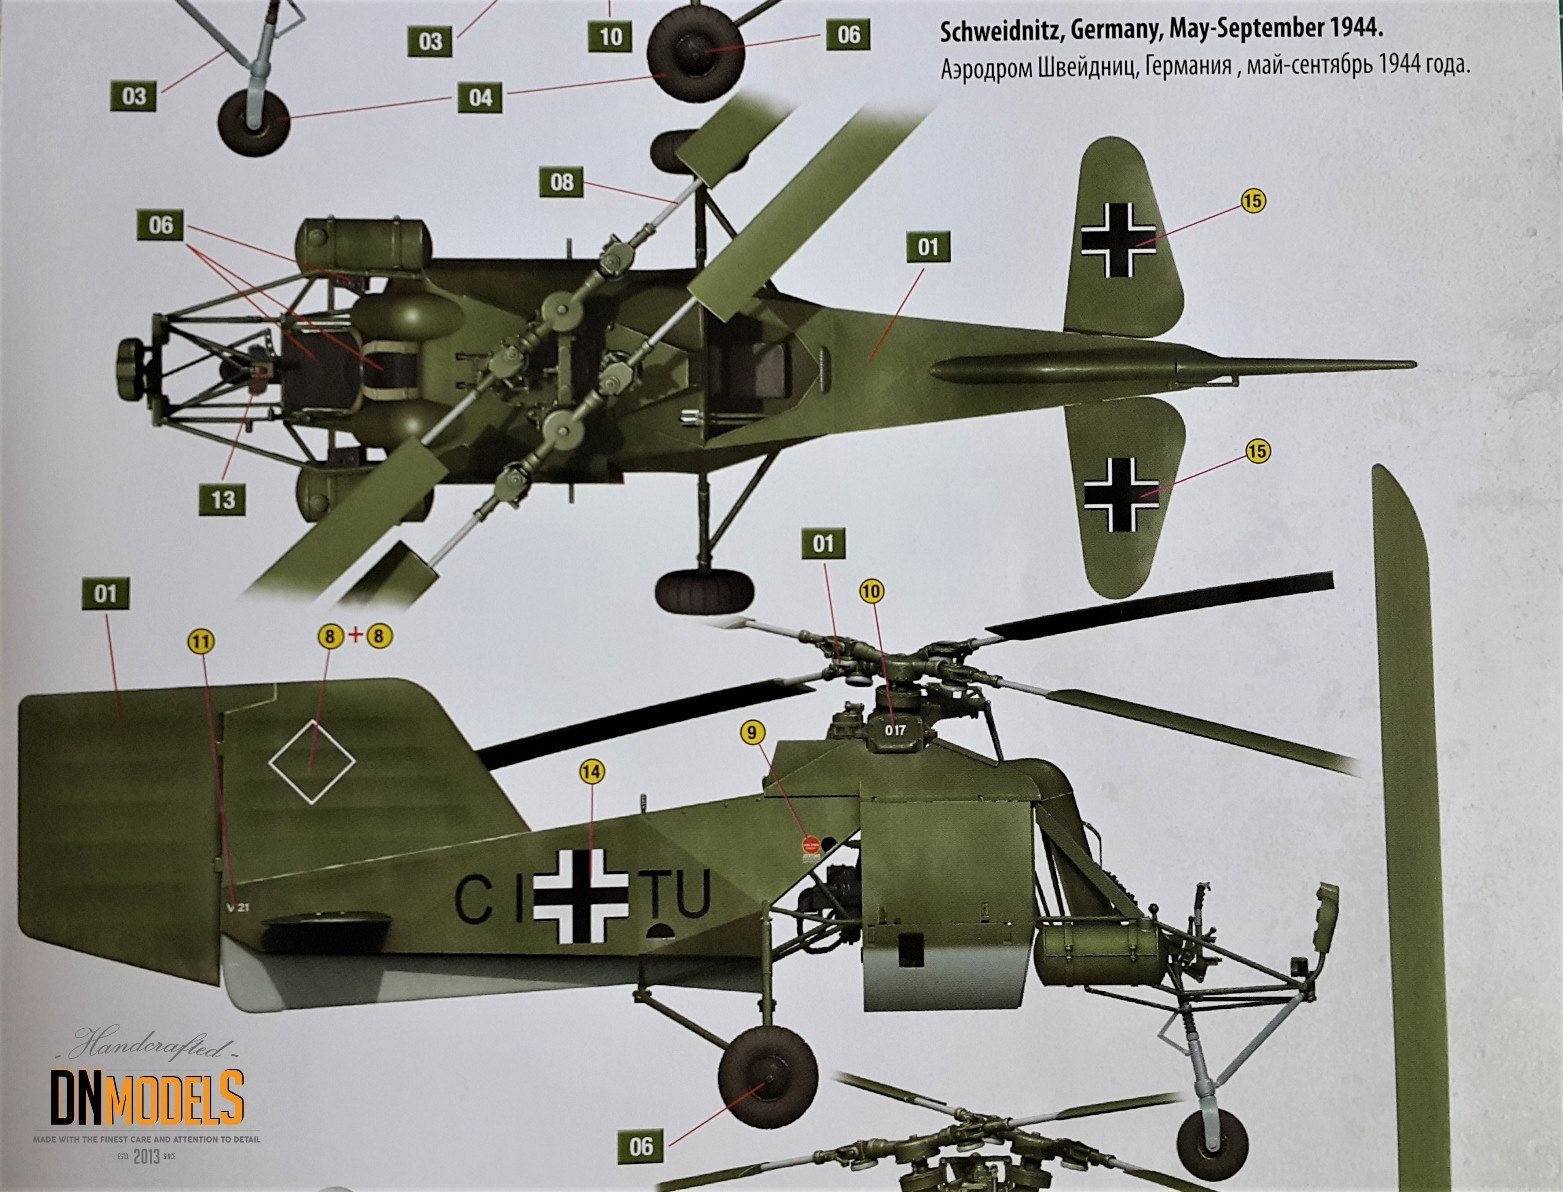 Flettner Fi 282 V21 kolibri dn models masks for scale models review unboxing